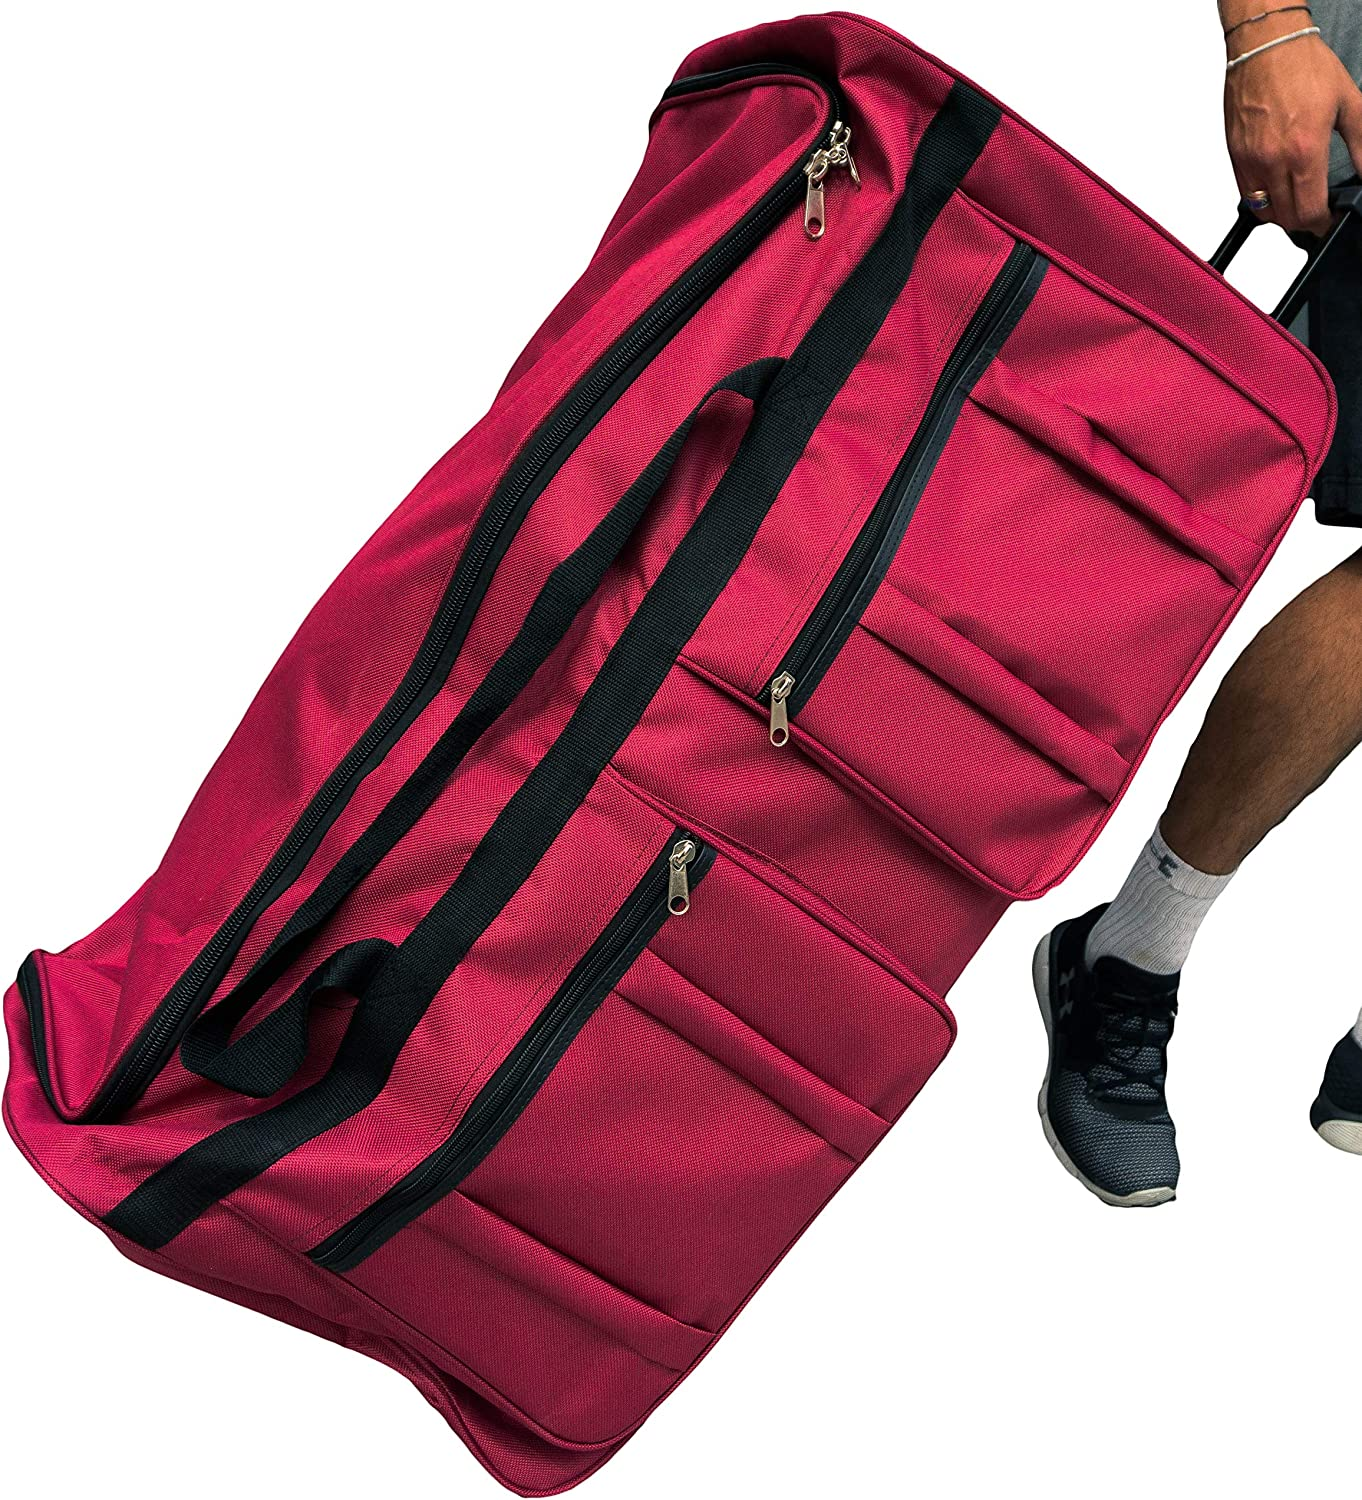 Gothamite 36-inch Rolling Duffle Bag with Wheels, Luggage Bag, Hockey Bag, XL Duffle Bag With Rollers, Heavy Duty Fuchsia